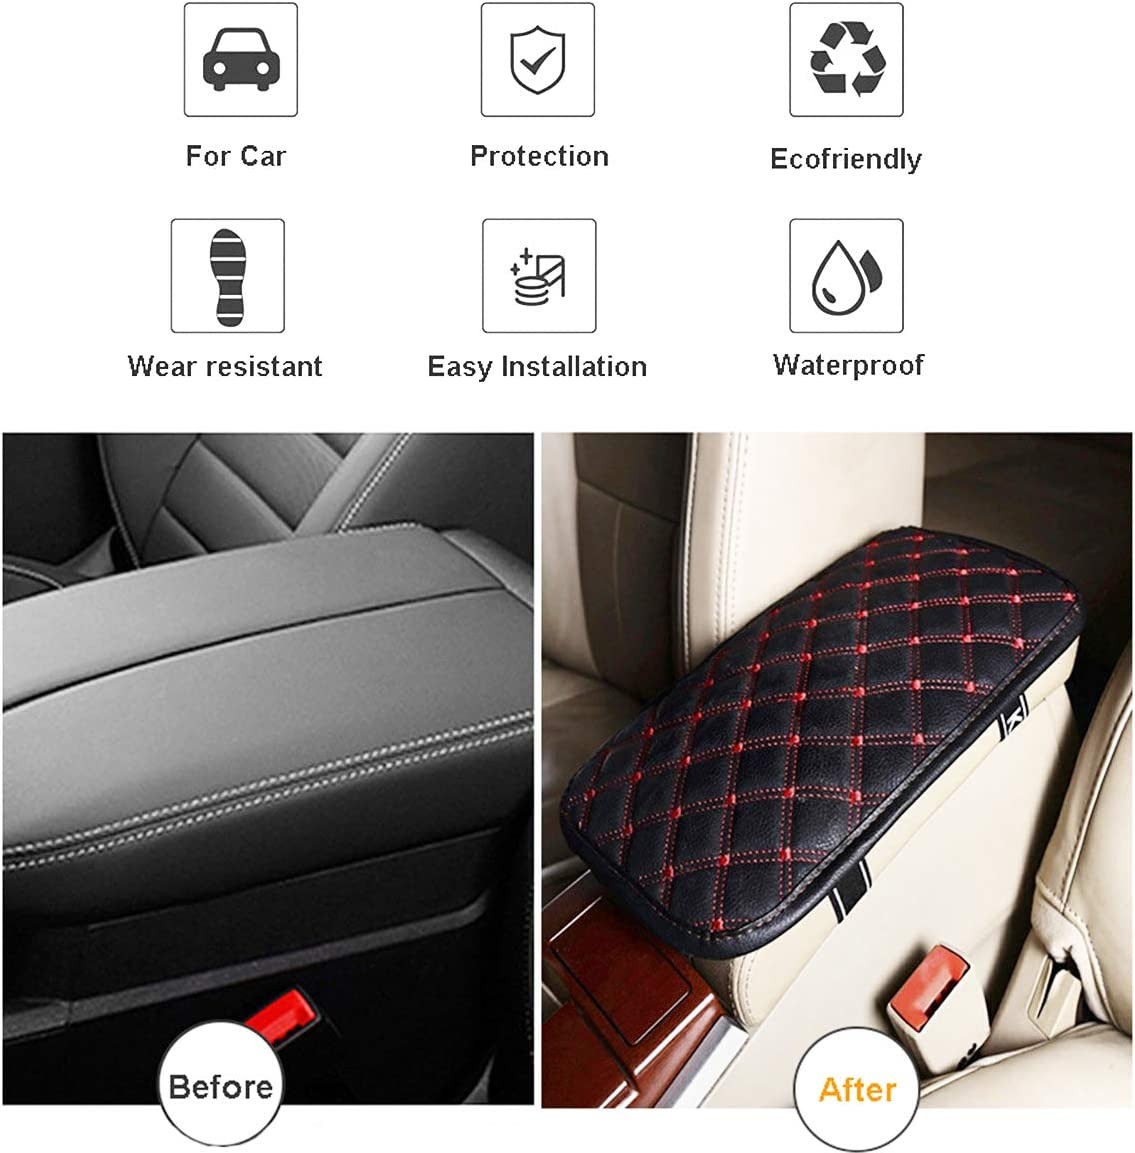 VRGT Car Center Armrest Cushion Mat,Naruto Naruto Design Armrest Cover Seat Box Cover Protector fit Most Car Vehicle SUV Truck Car 12.6x7.5inch